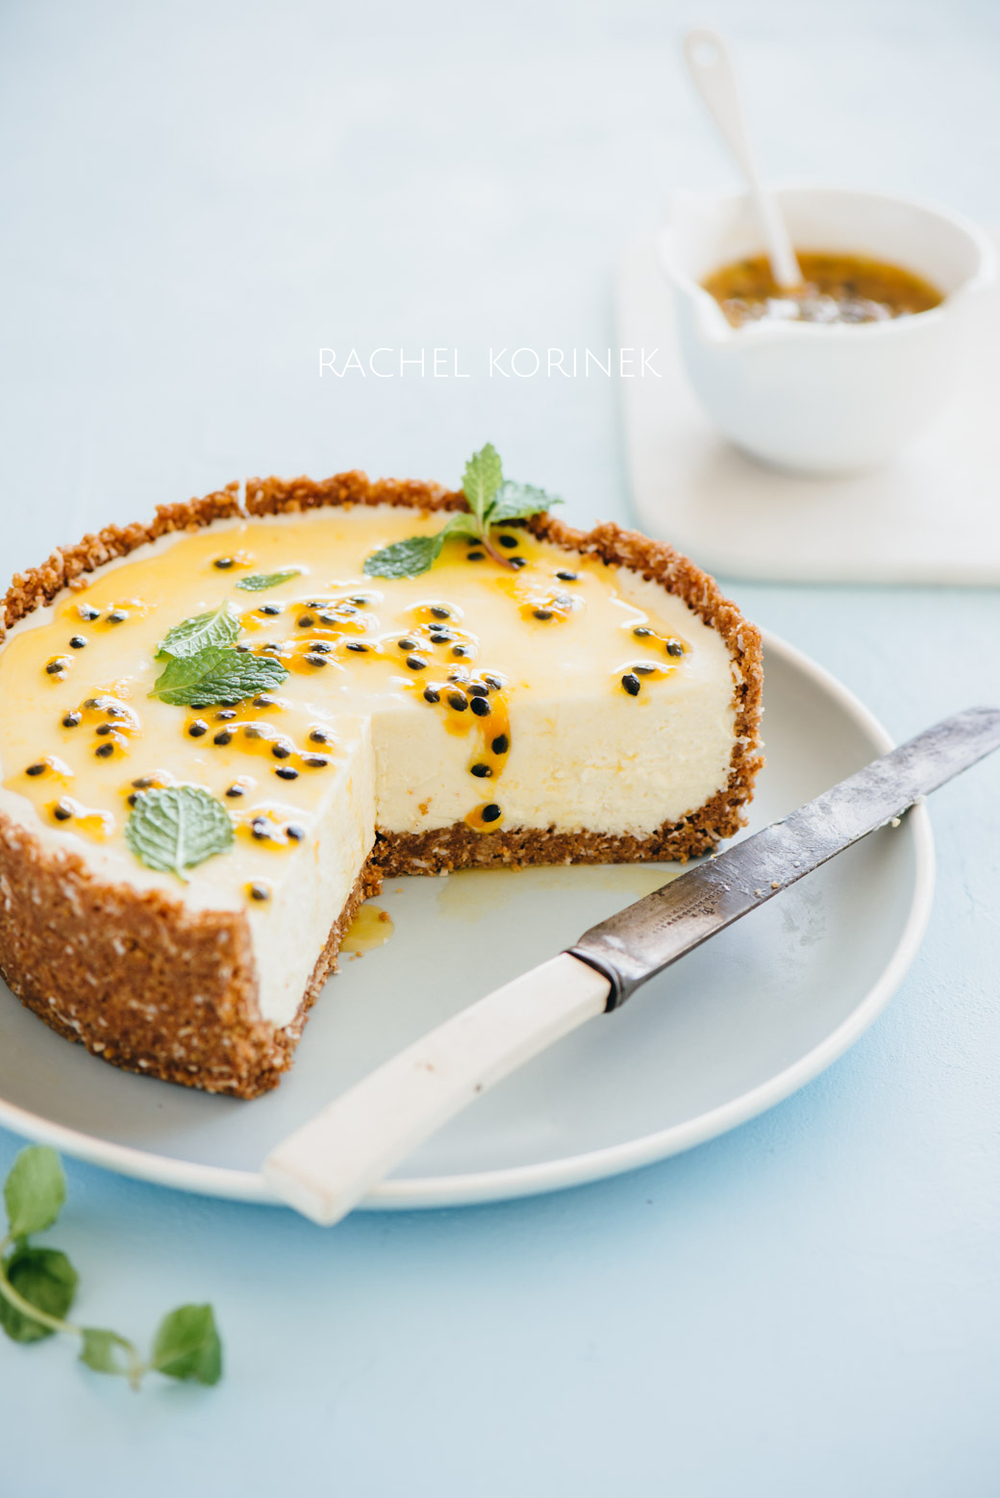 White Chocolate + Passionfruit Cheesecake   Rachel Korinek Food Photographer  Click to check out my latest food photography projects.  #twolovesstudio #beautifulcuisine #foodbloggerpro #foodphotography #learnfoodphotography #foodblogger #learnphotography #foodstyling #lightingtips #naturallight #foodphotographer